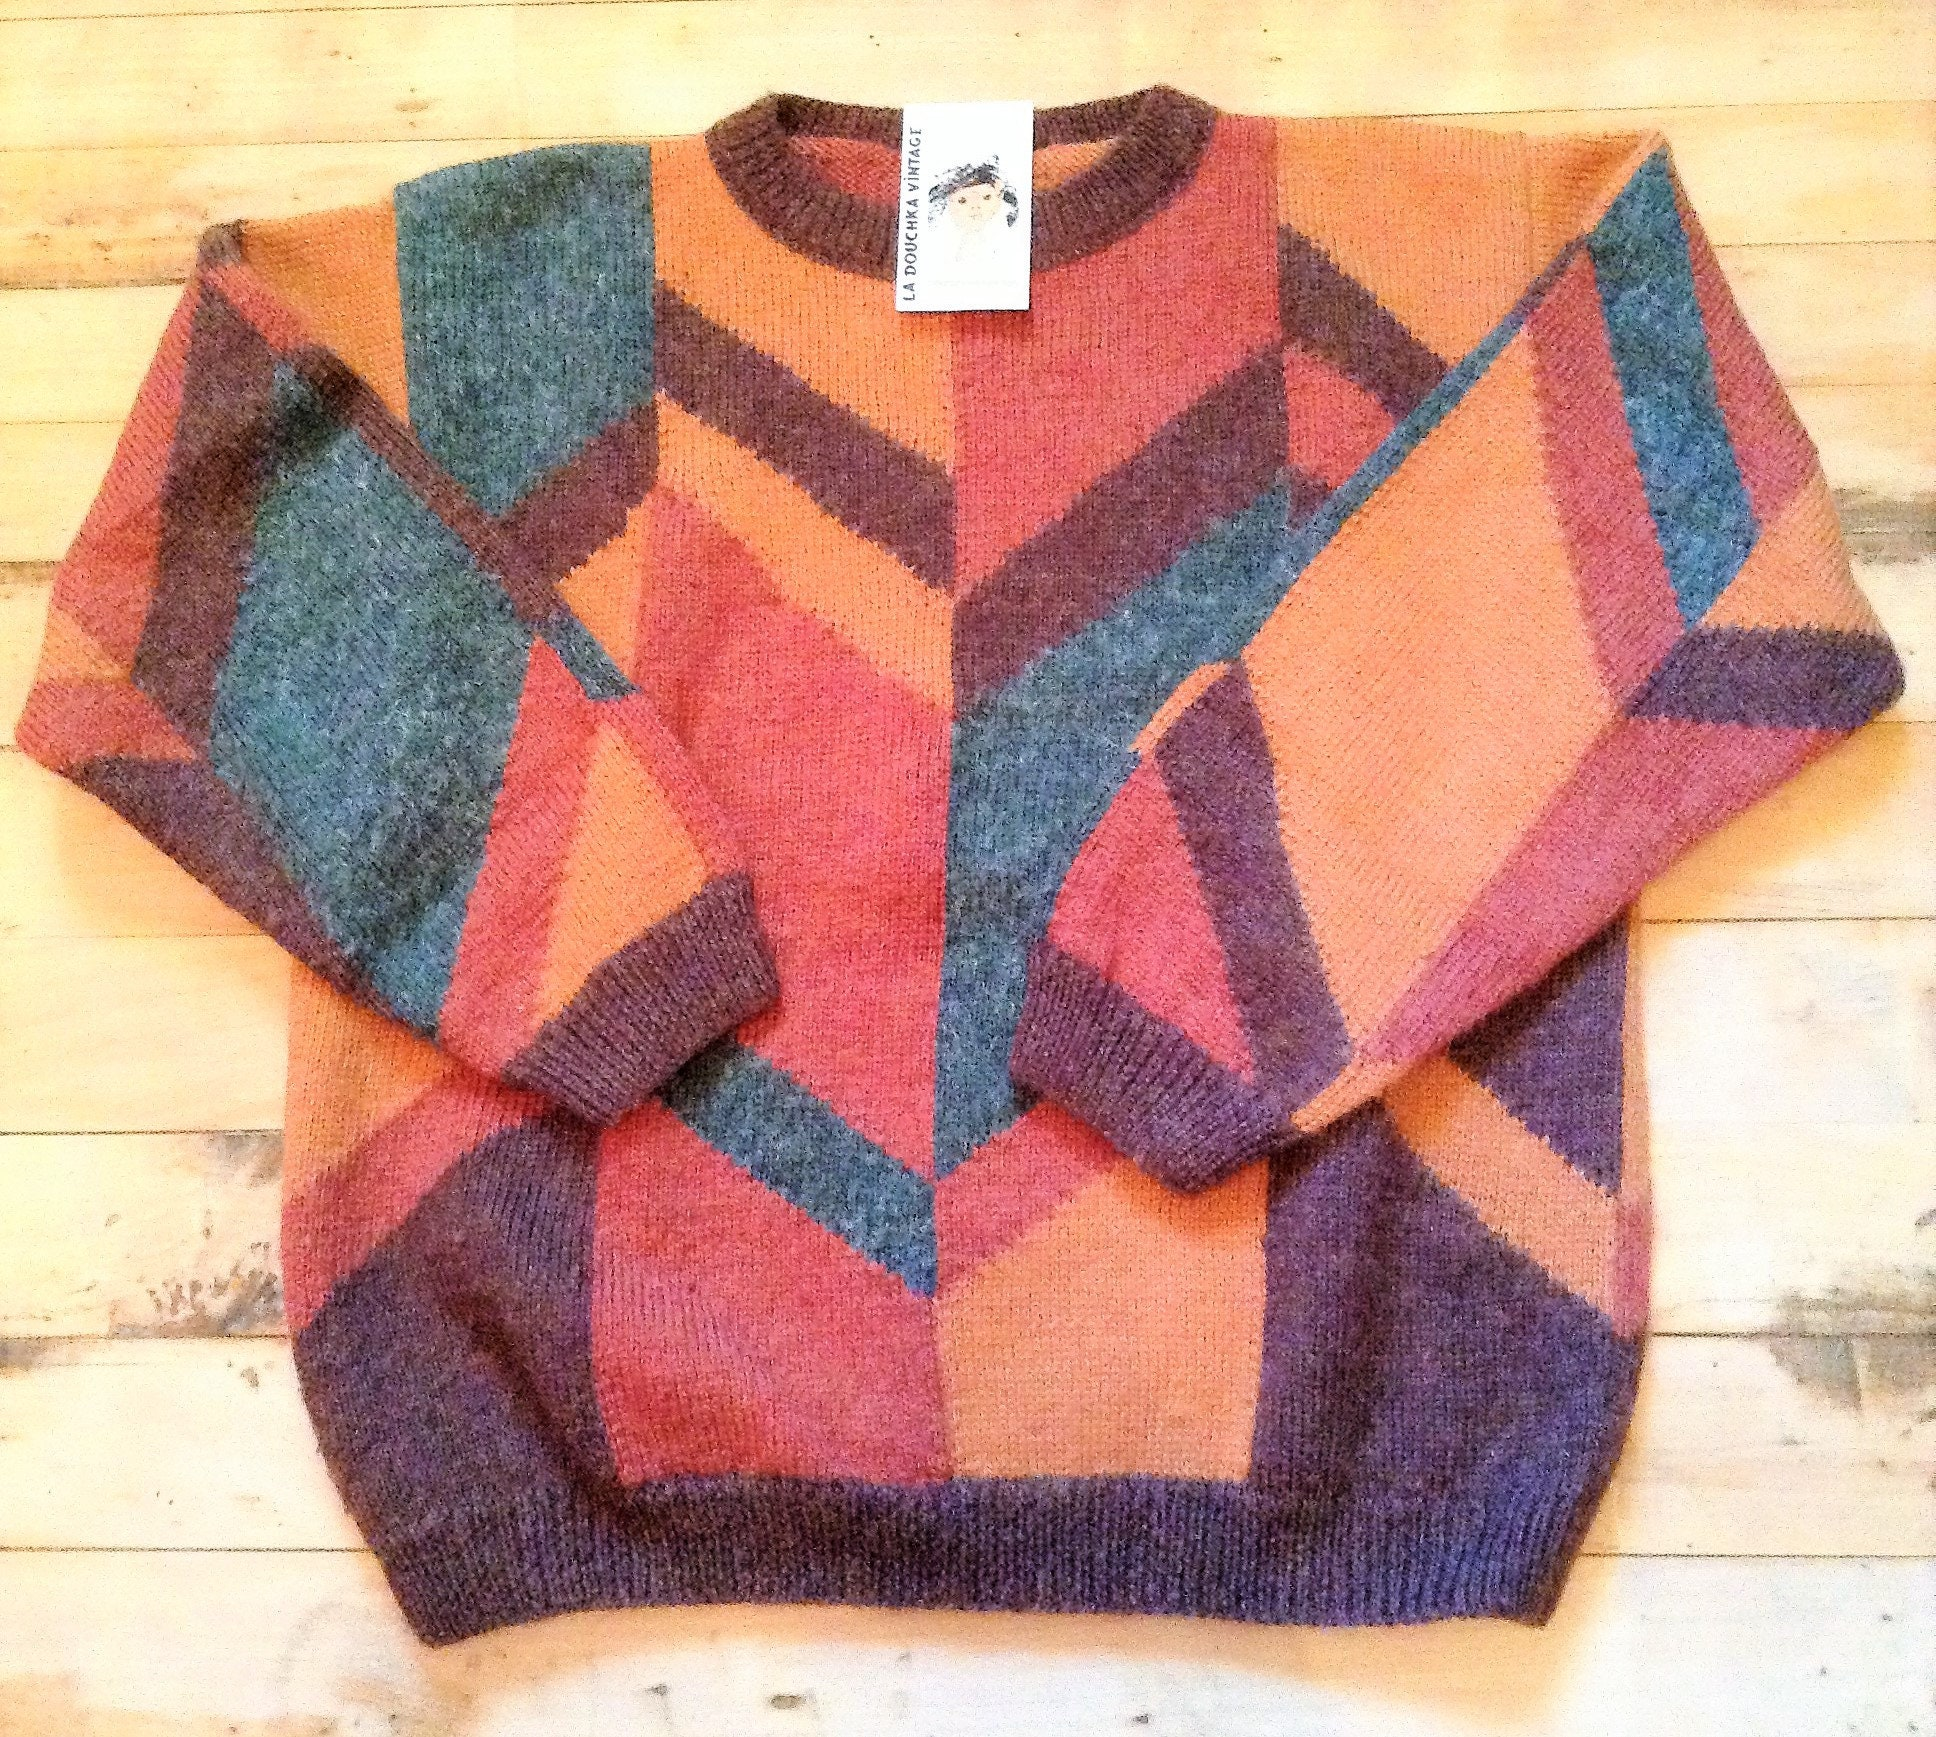 French 1980s Men Vintage Winter Hand Knitted Knitted Hand Wool